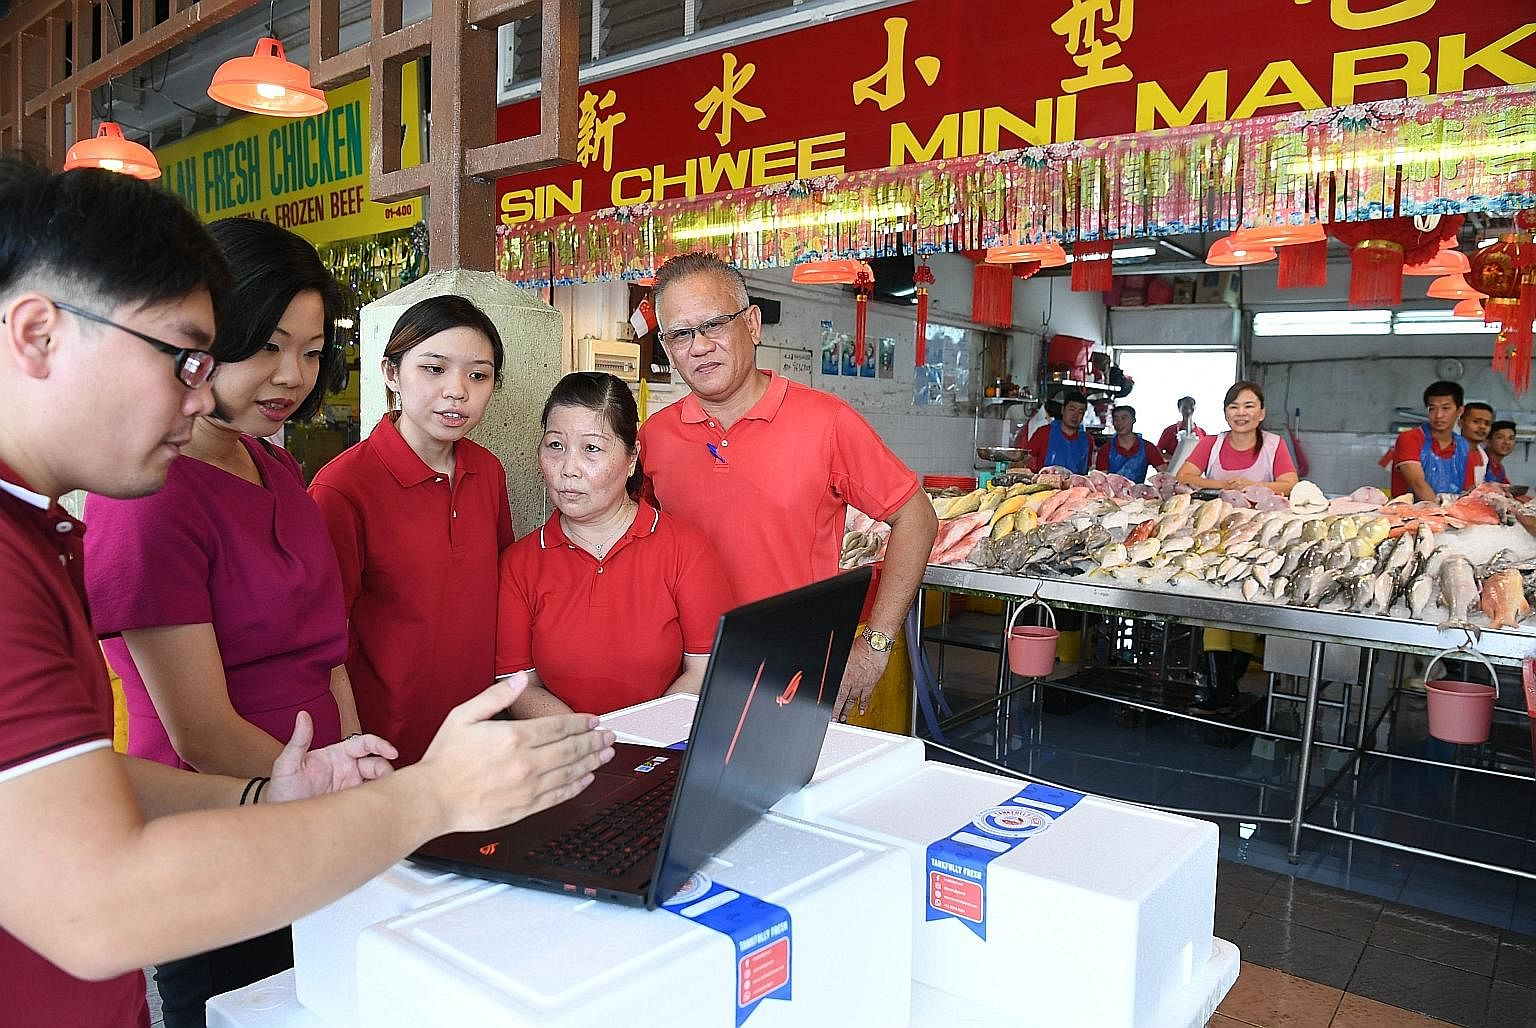 Since 1990, Sin Chwee Mini Market has been selling fresh seafood from its store in Bukit Gombak, but in a bid to reel in younger customers, its owners have digitalised their business. Yesterday, Mr Jimmy Goh (left), owner of its e-commerce arm Tankfu